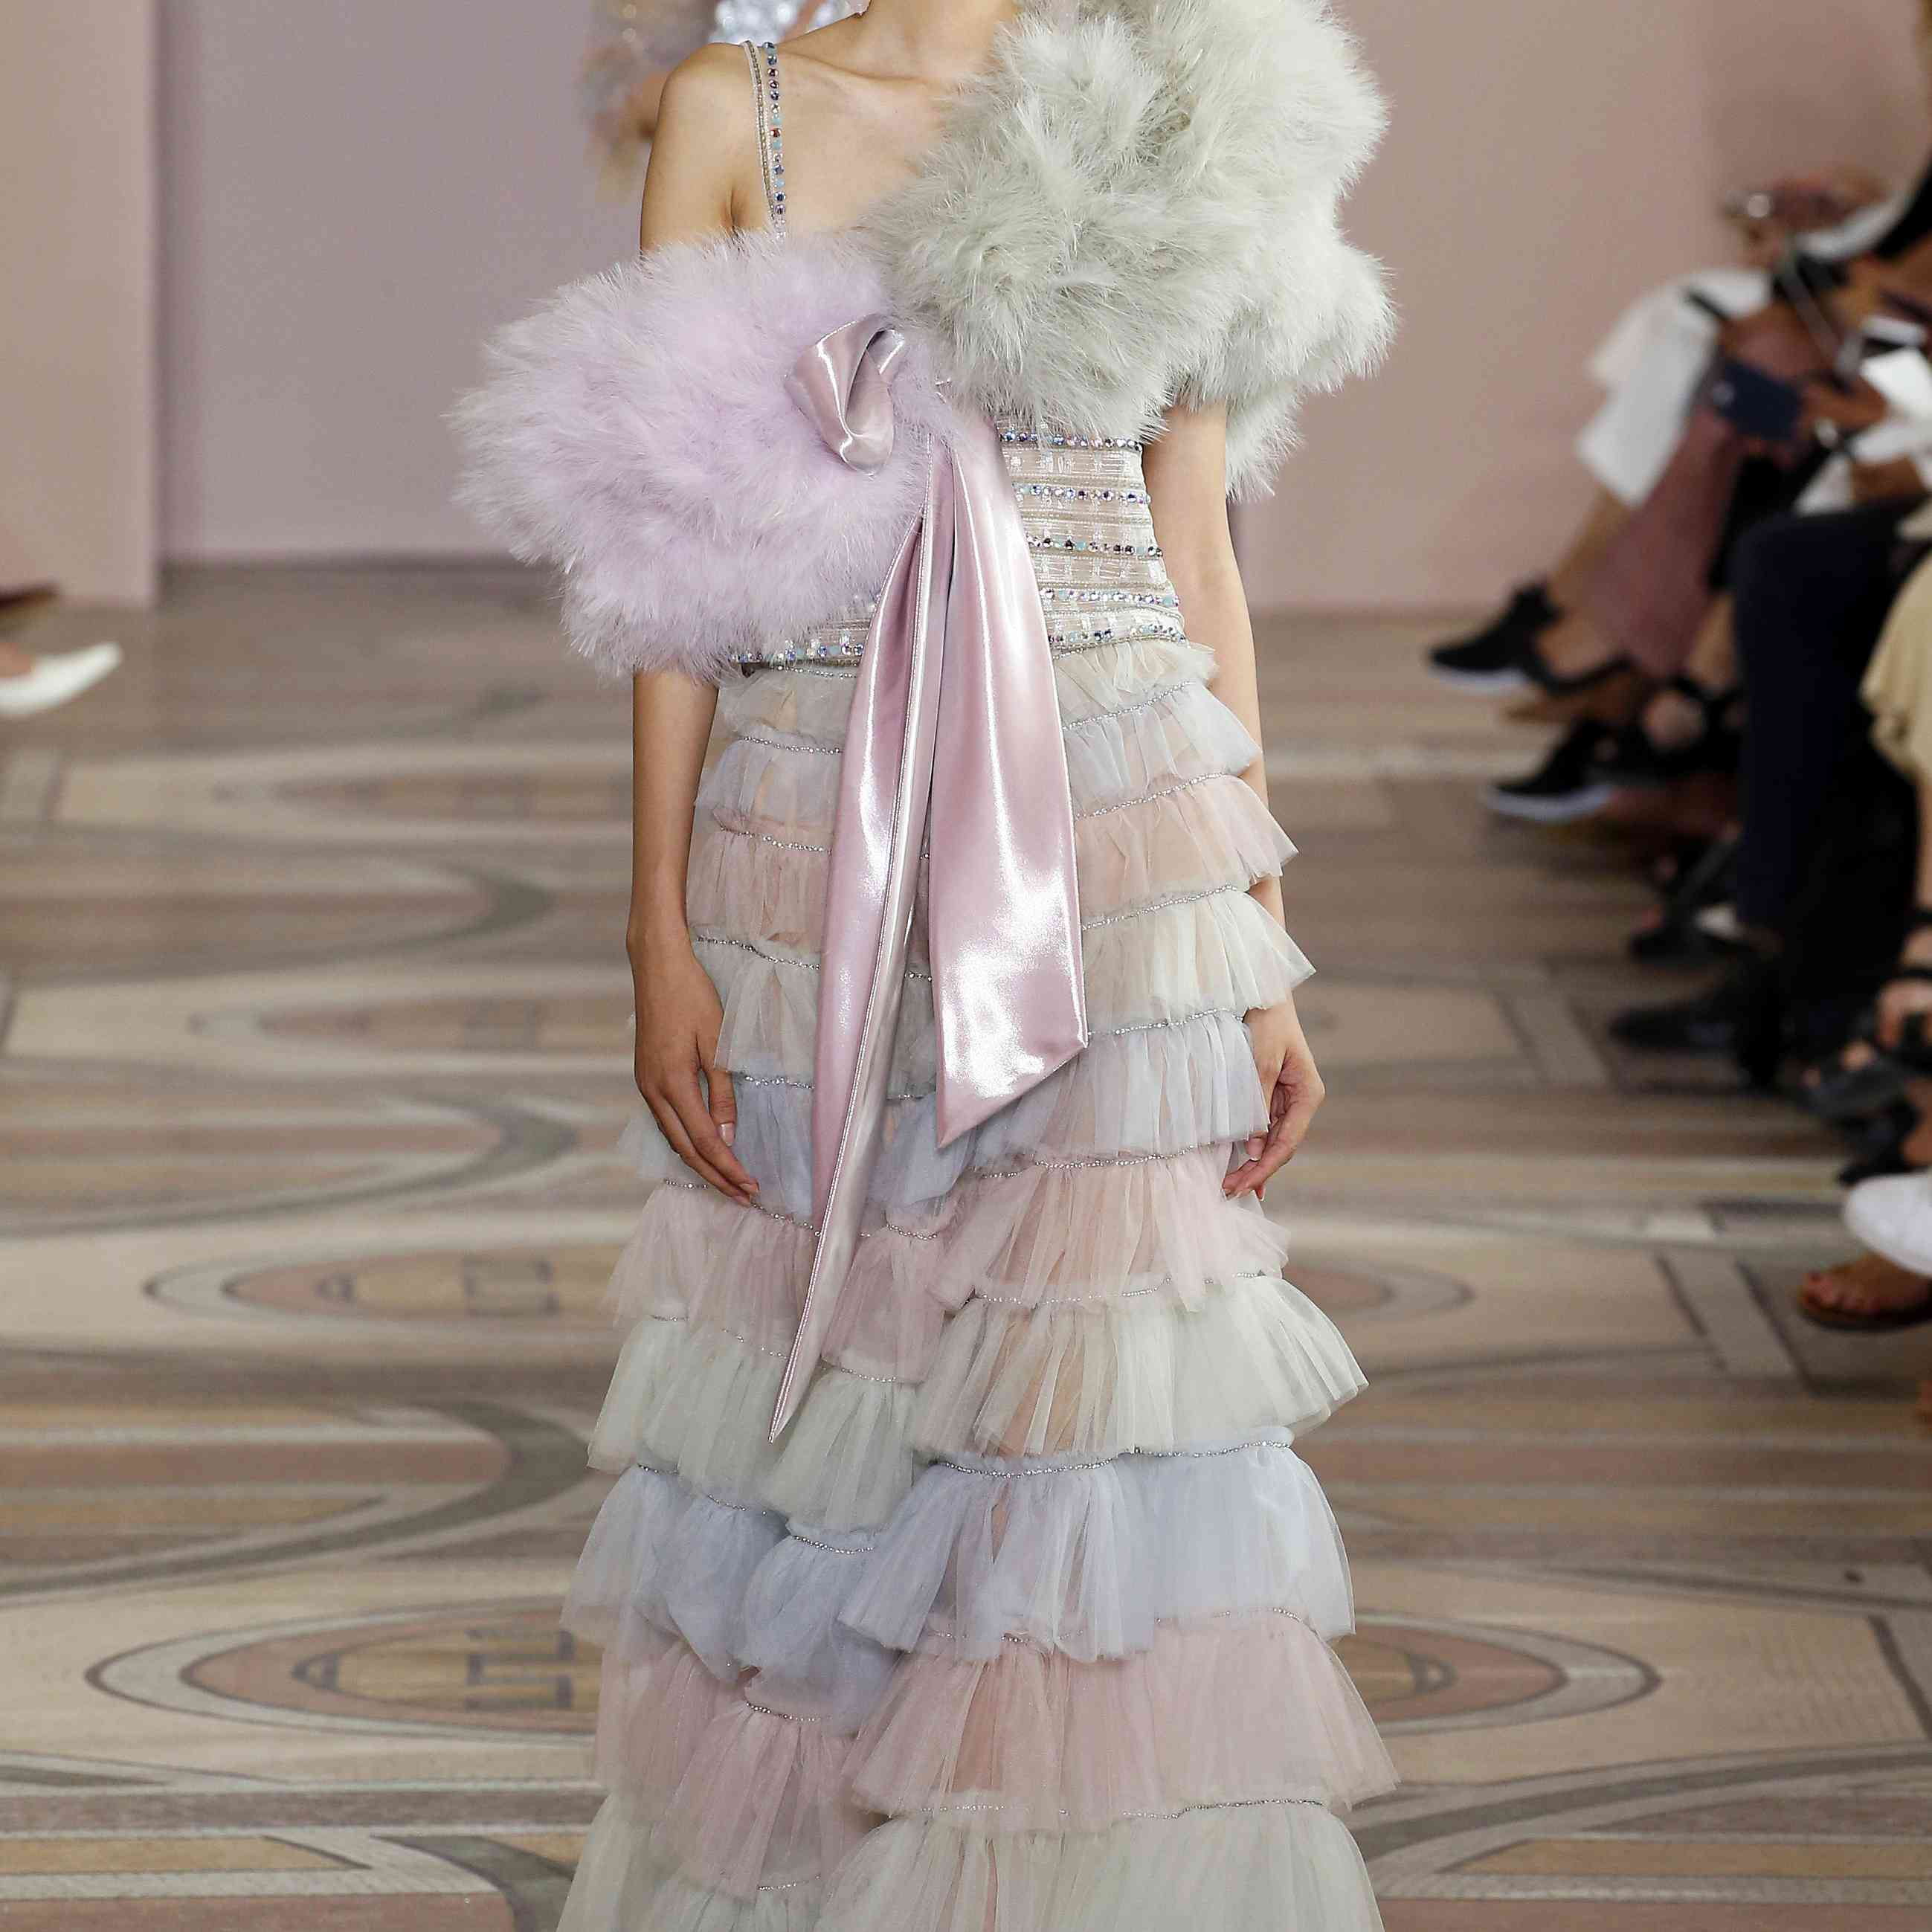 A model walks the runway in multicolored tulle wedding dress with fur